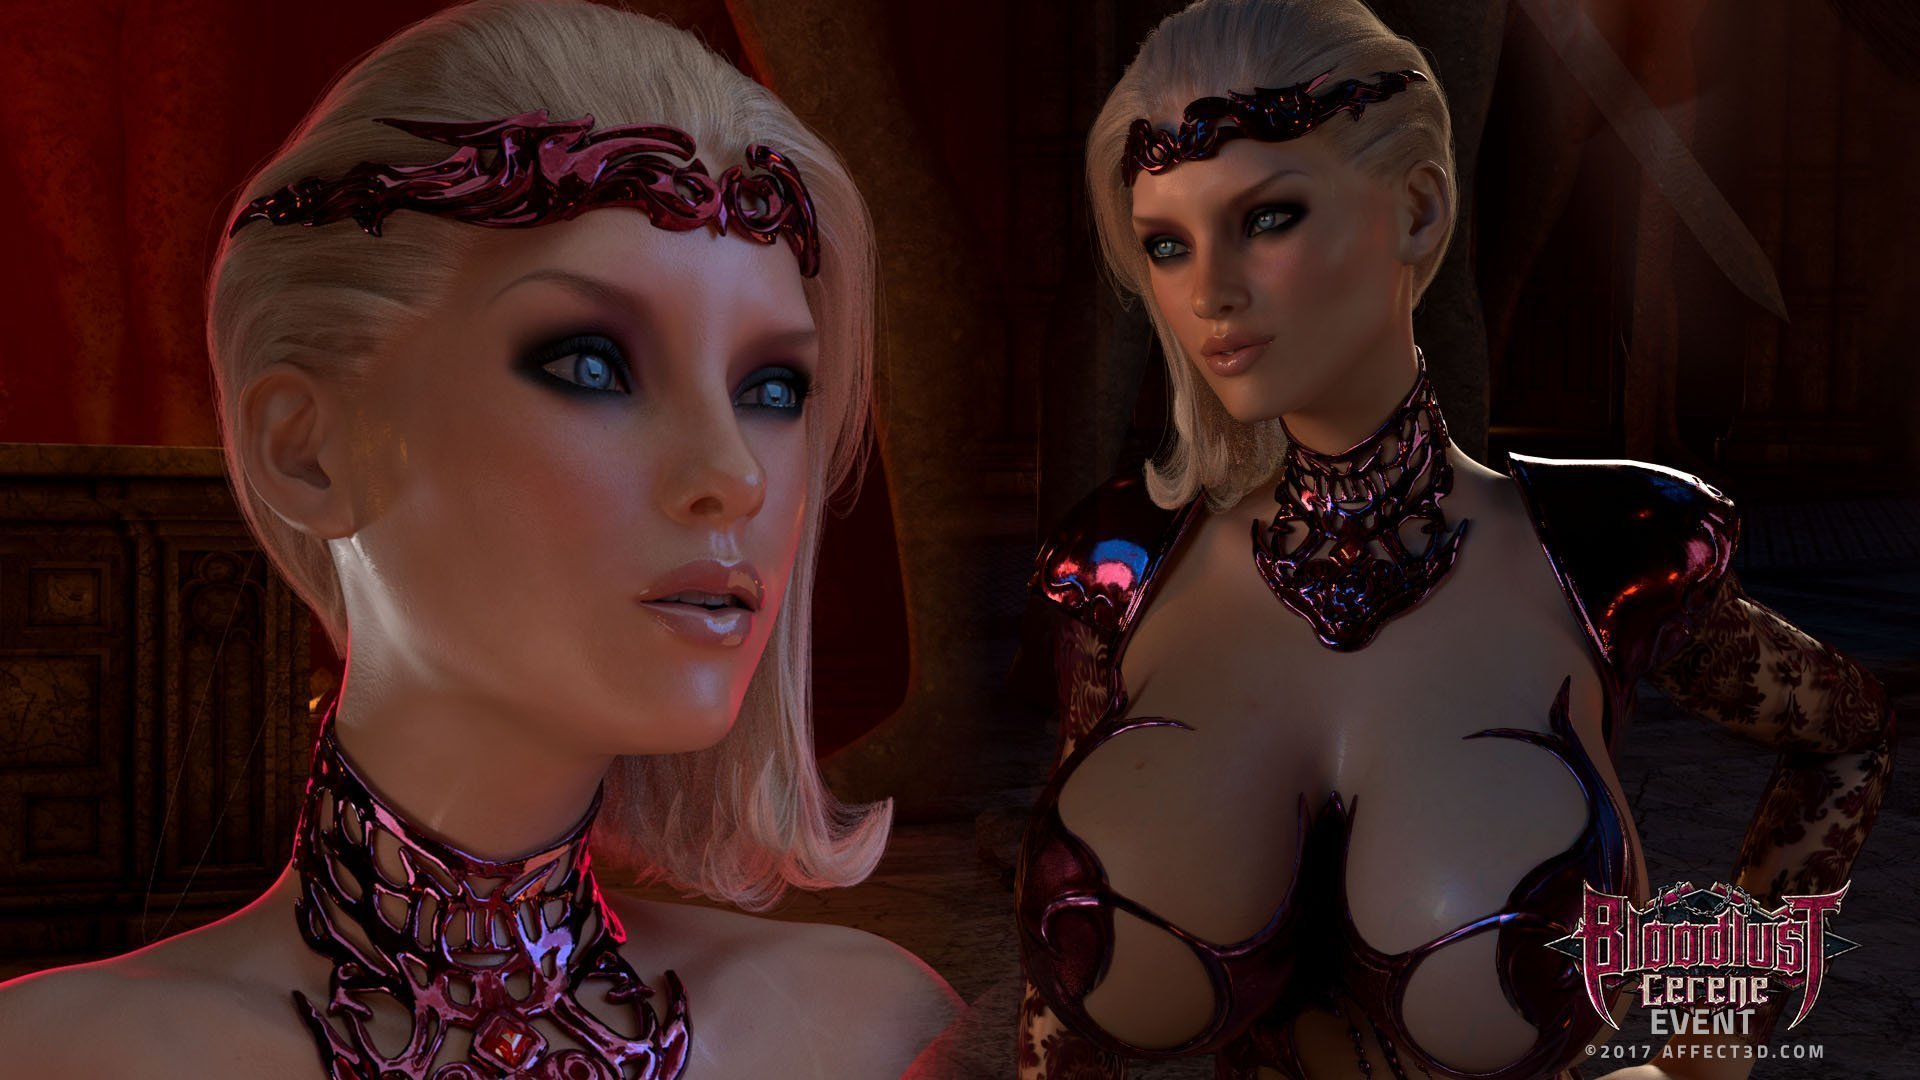 Interview With A Dickgirl Beautiful bloodlust - affect3d